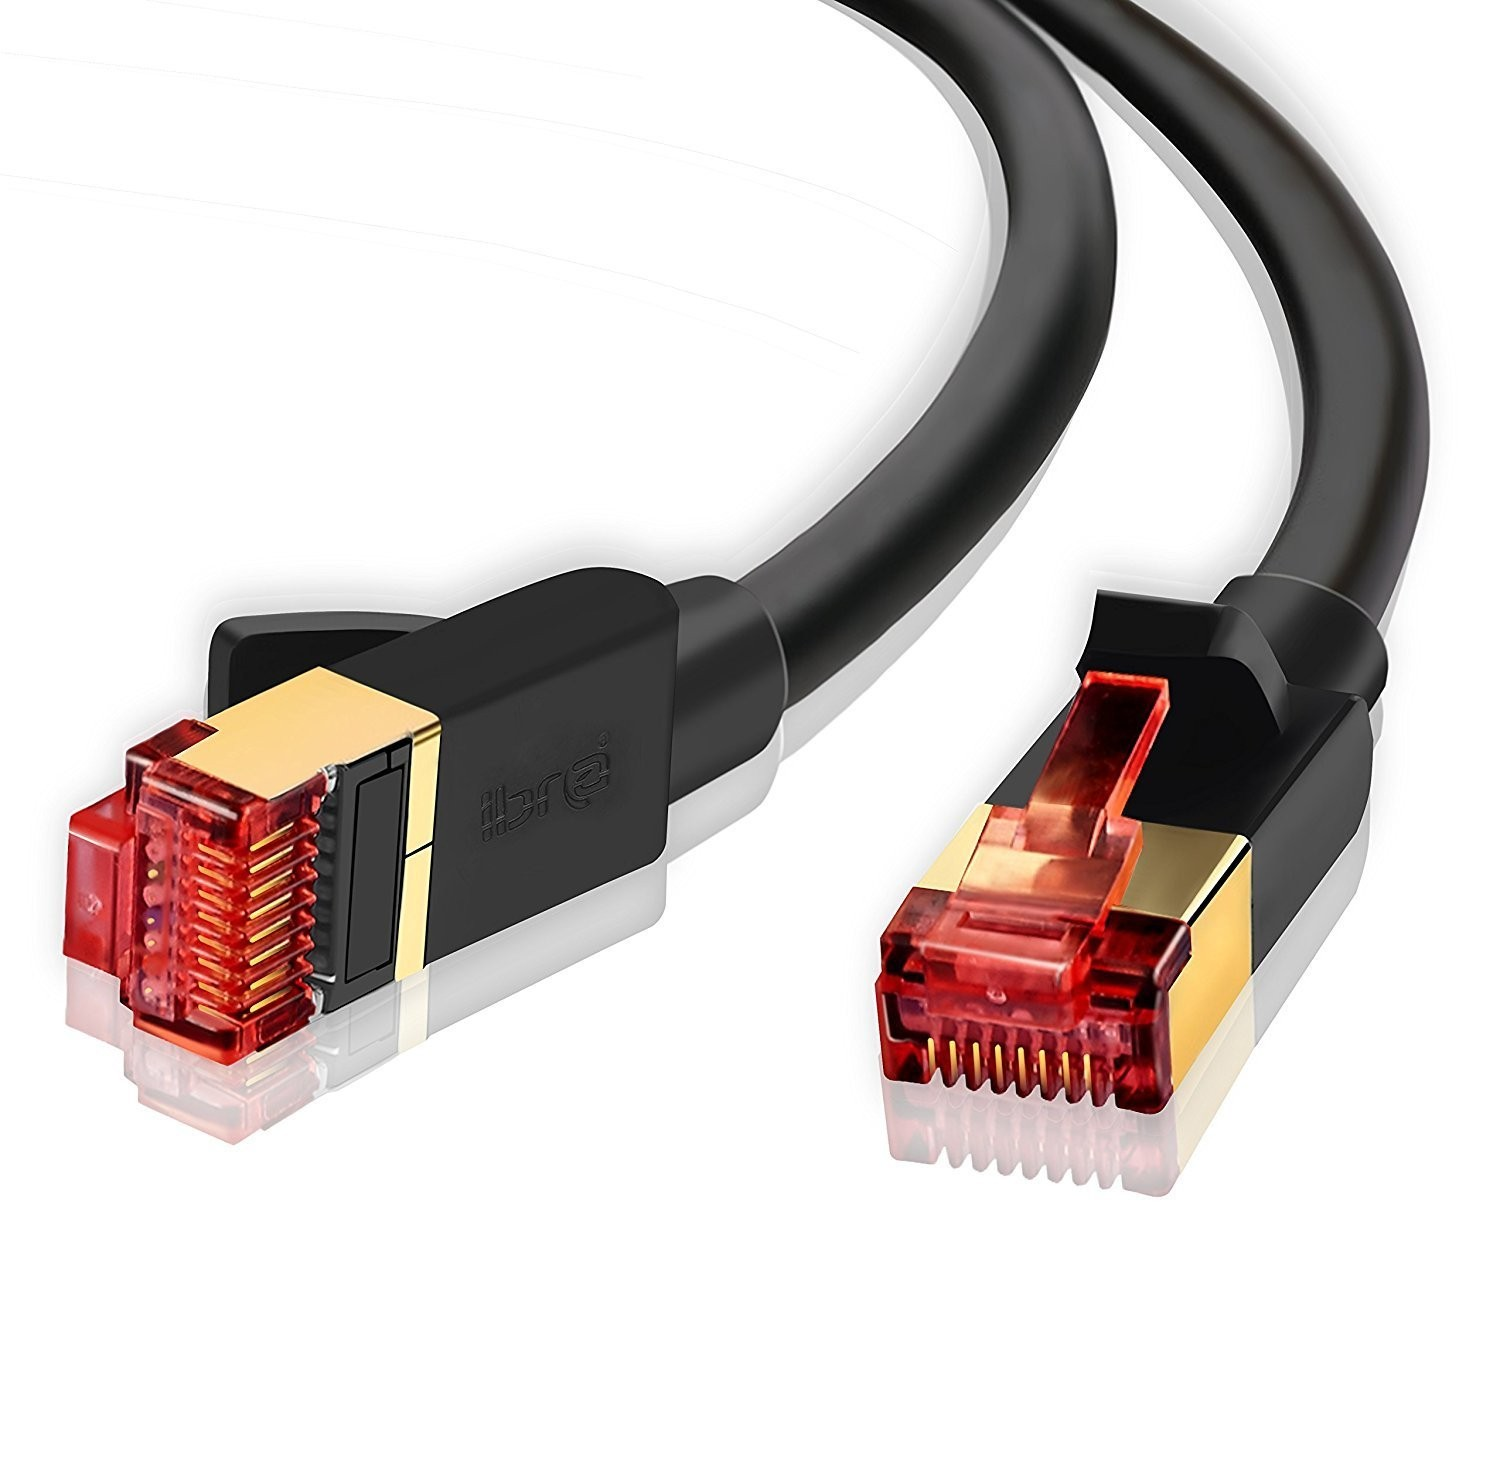 Peachy Ethernet Gigabit Lan Network Cable Rj45 Advanced Cat 7 Gold Wiring Cloud Loplapiotaidewilluminateatxorg